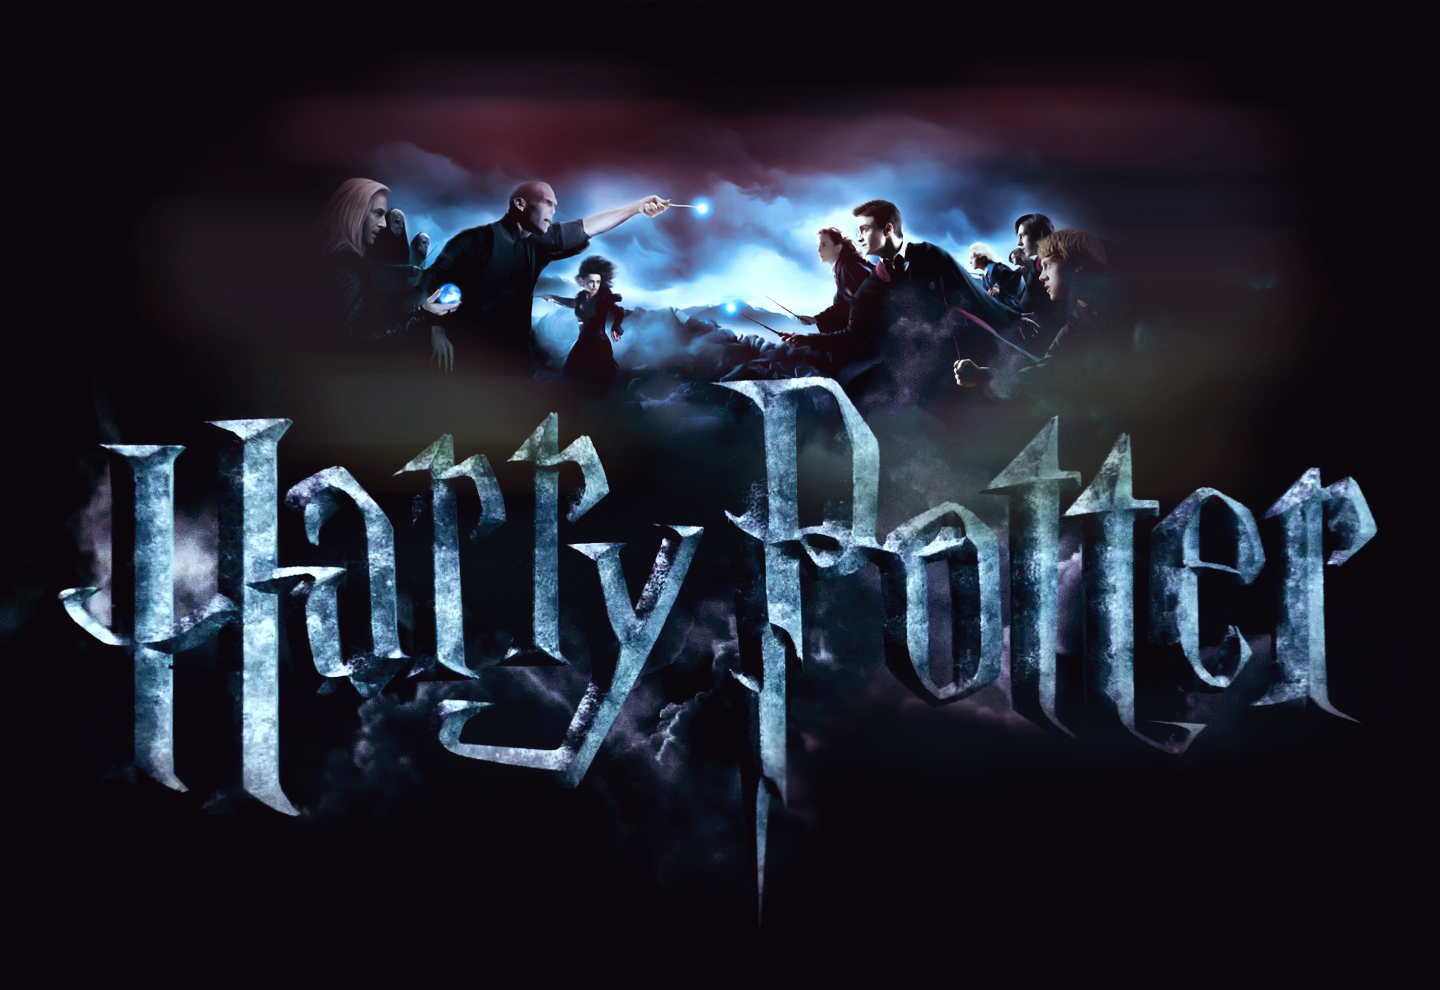 The-Best-Epic-Story-Films-OK-guys-i-will-share-about-The-Best-Epic-Story-Films-Harry-Pott-wallpaper-wp36012687